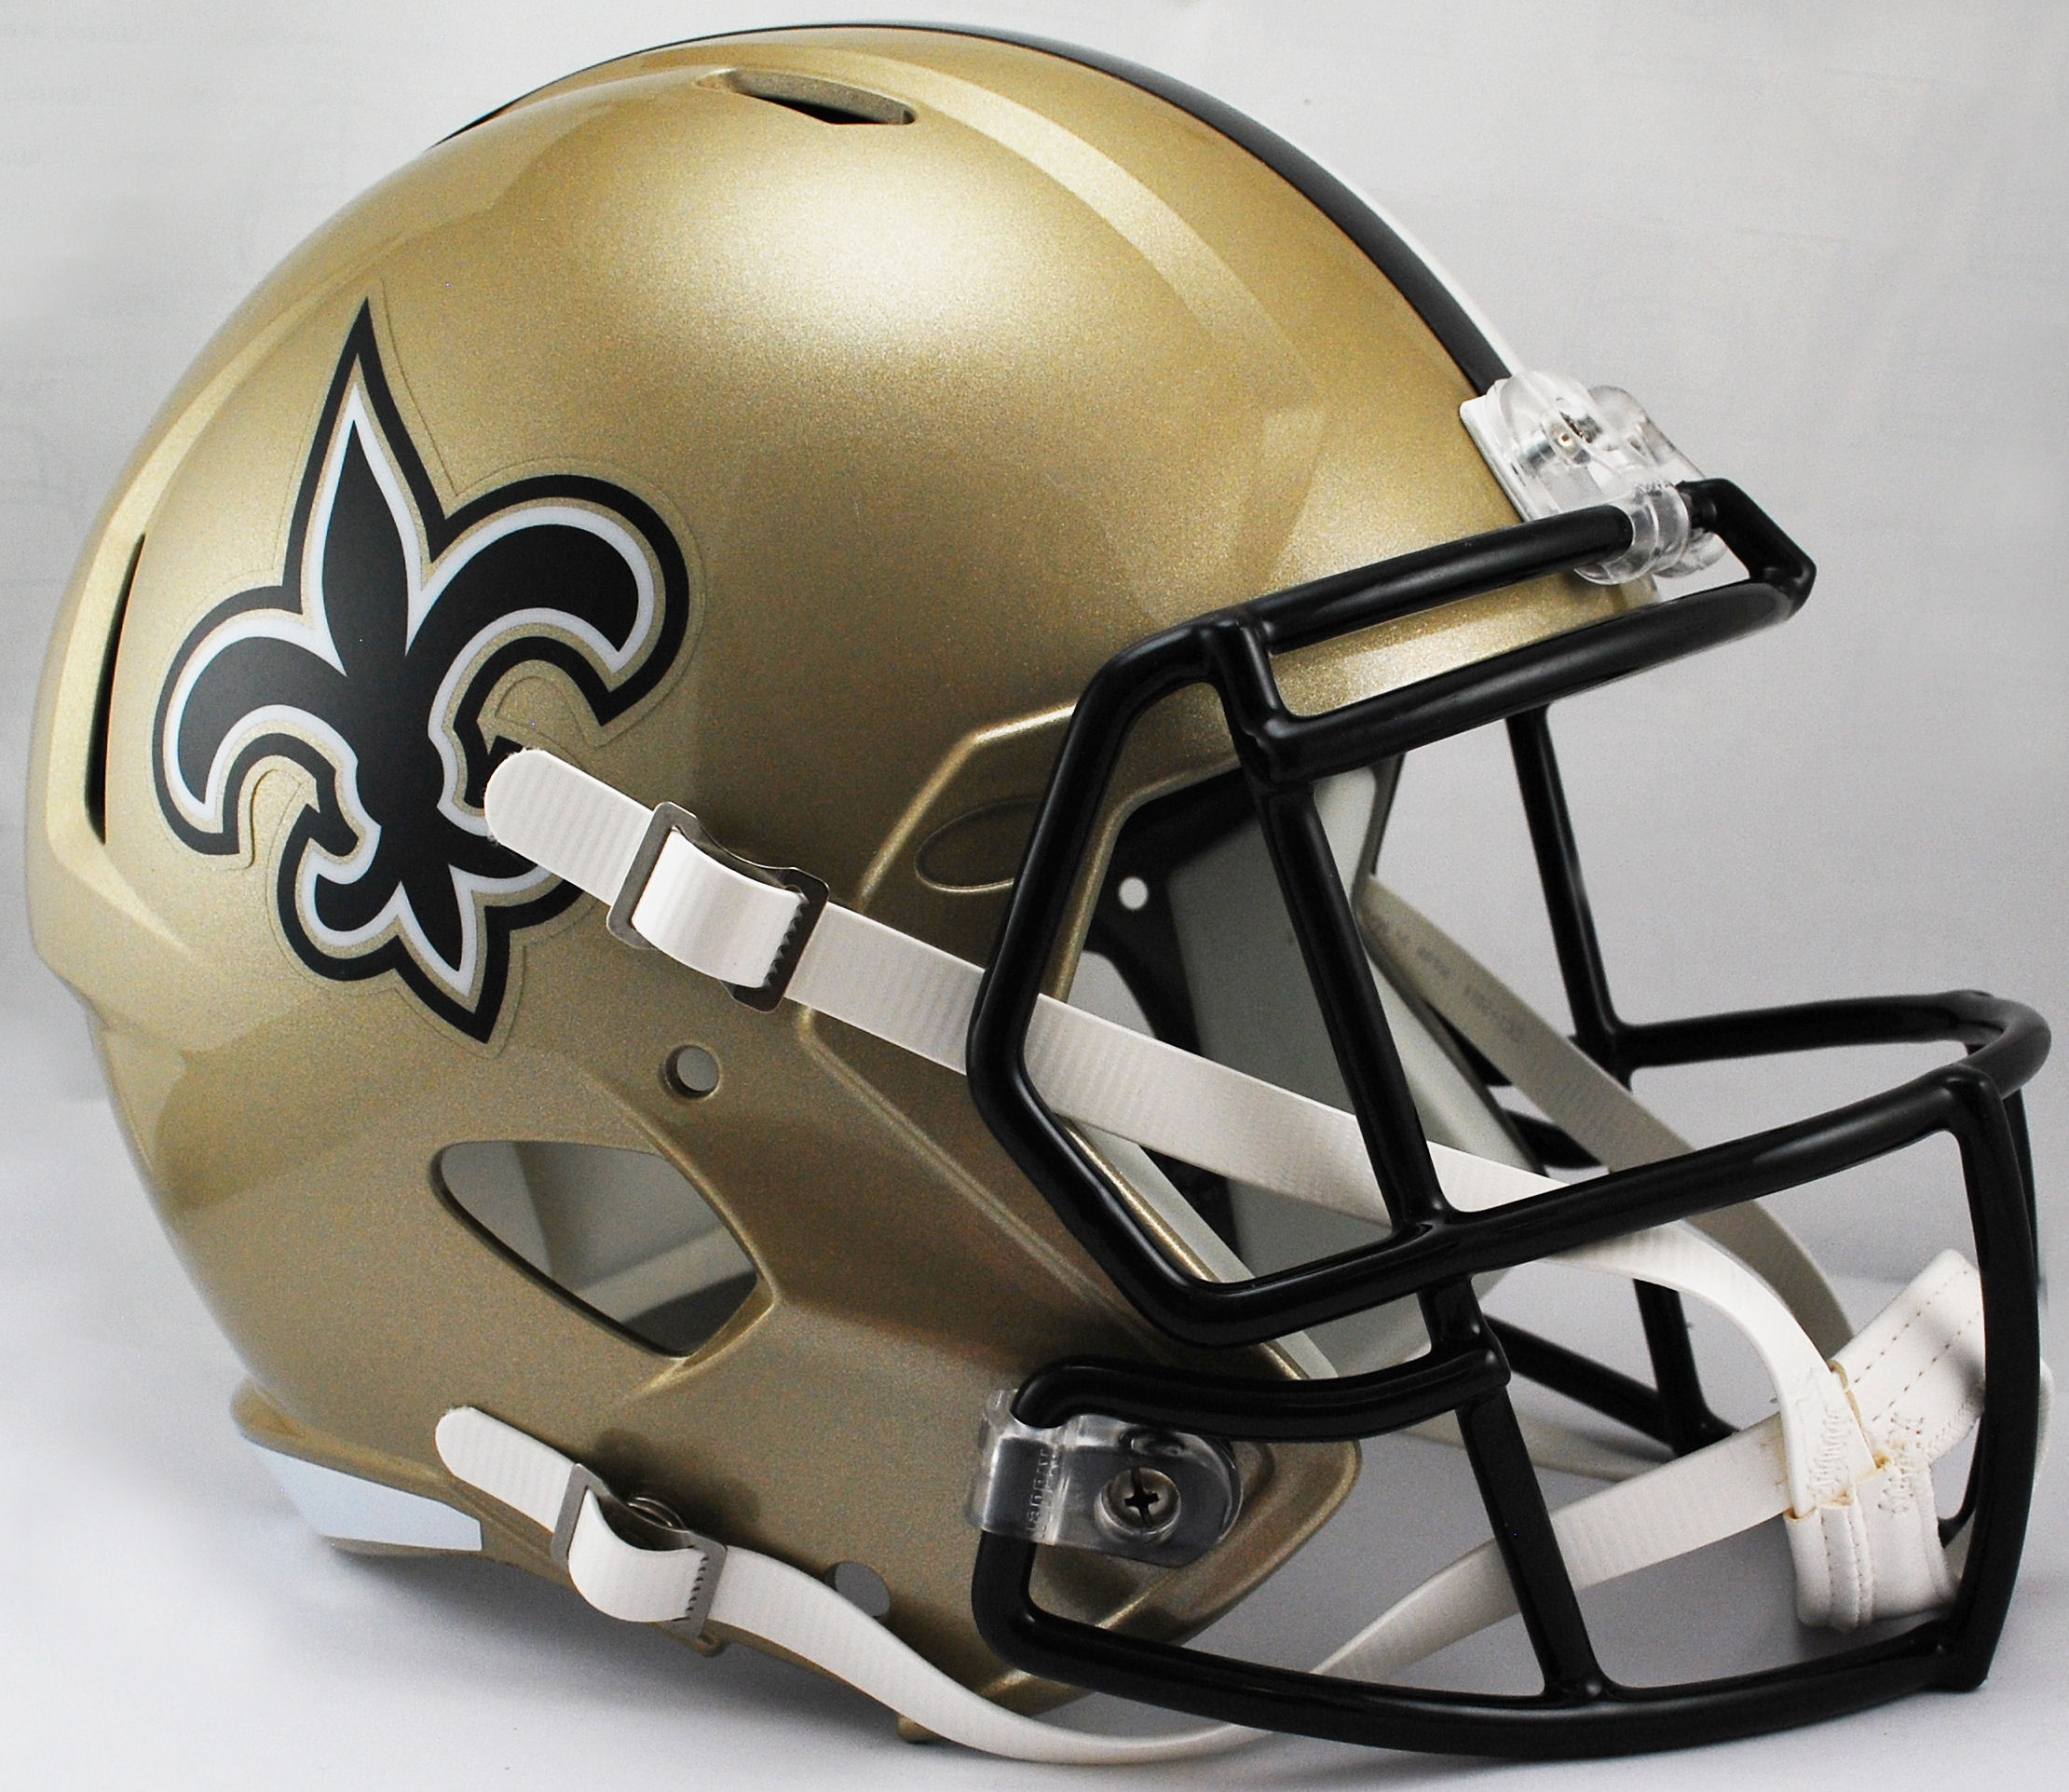 New Orleans Saints Speed Replica Football Helmet